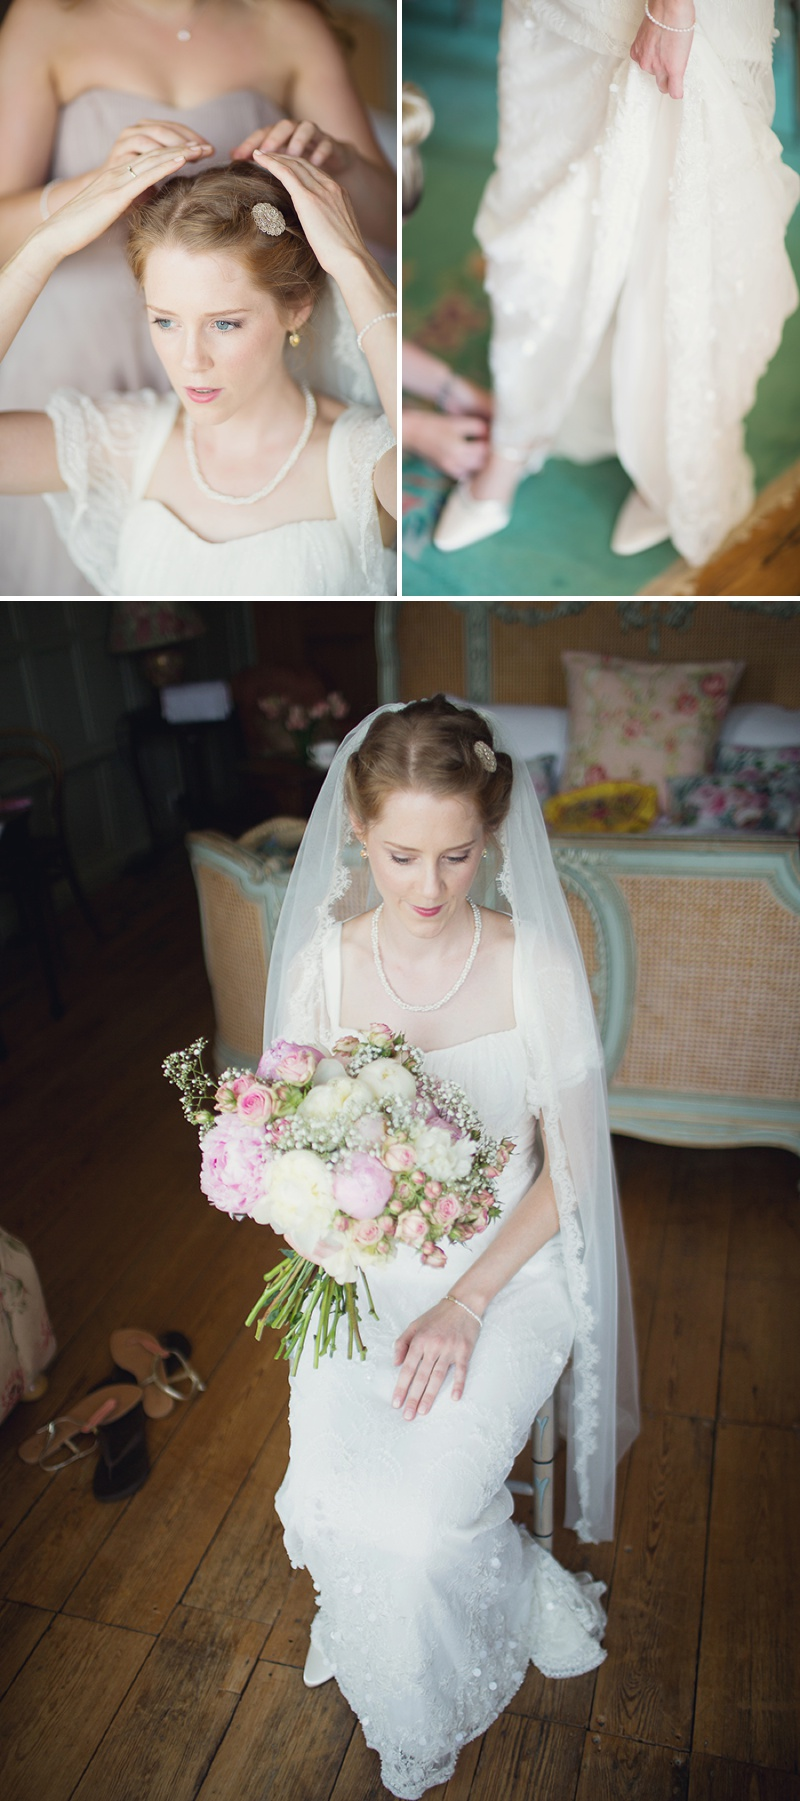 A Beautiful Vintage English Countryside Wedding At Narborough Hall Gardens In Norfolk With An Anoushka G Wedding Dress And An Oversized Pink Peony And Rose Bouquet._0005